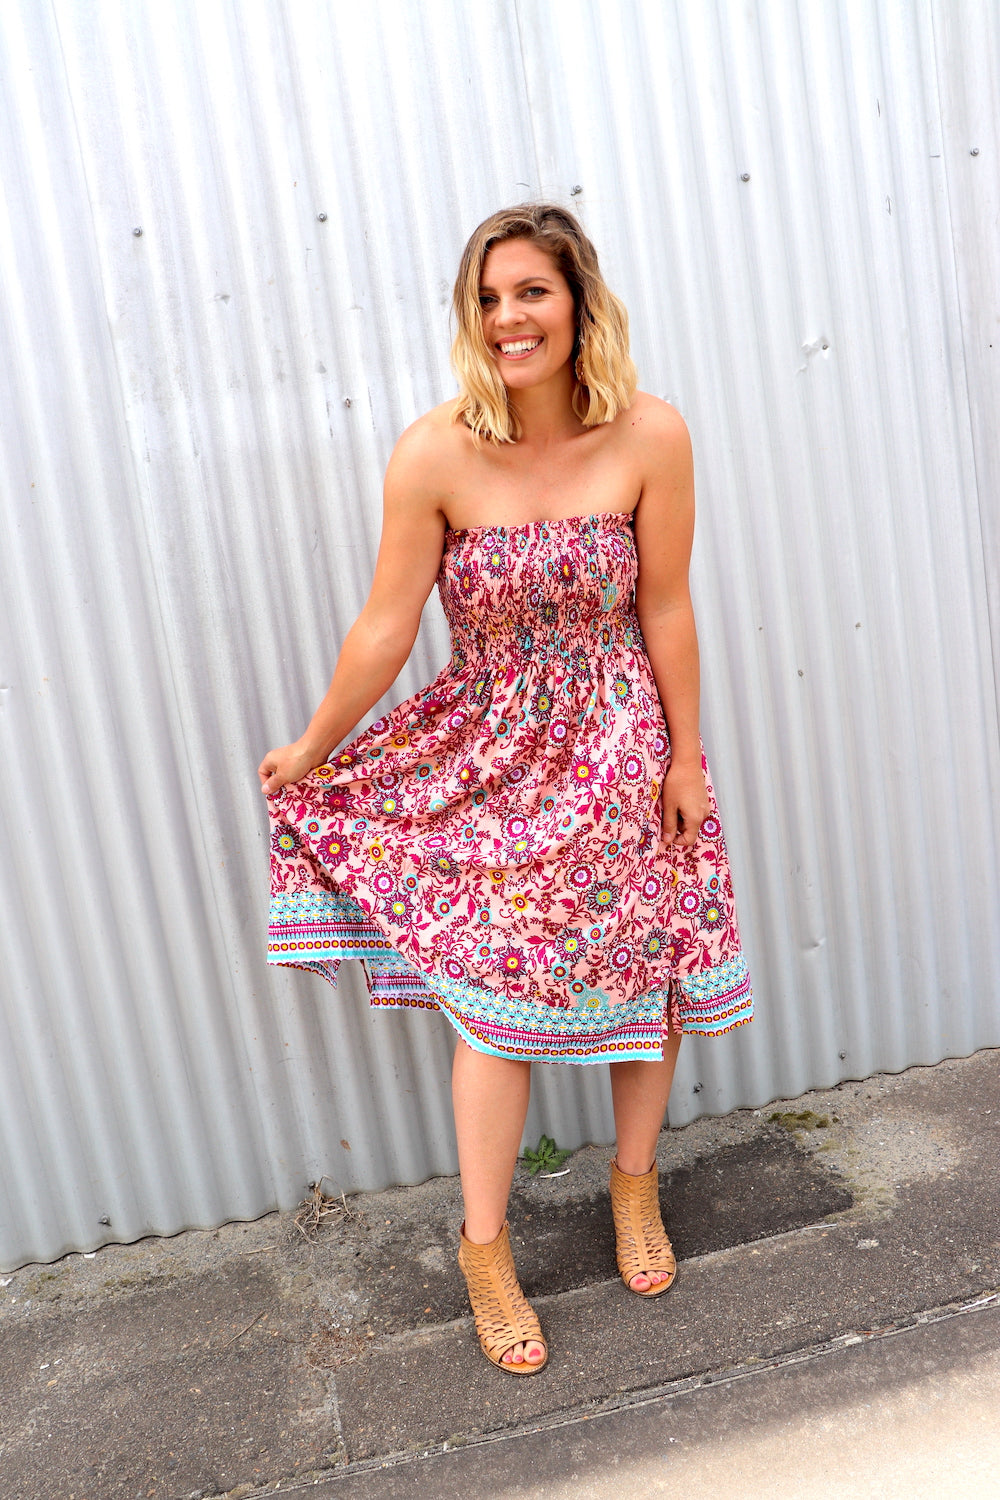 Strapless Beach Dress/Skirt In Botanical